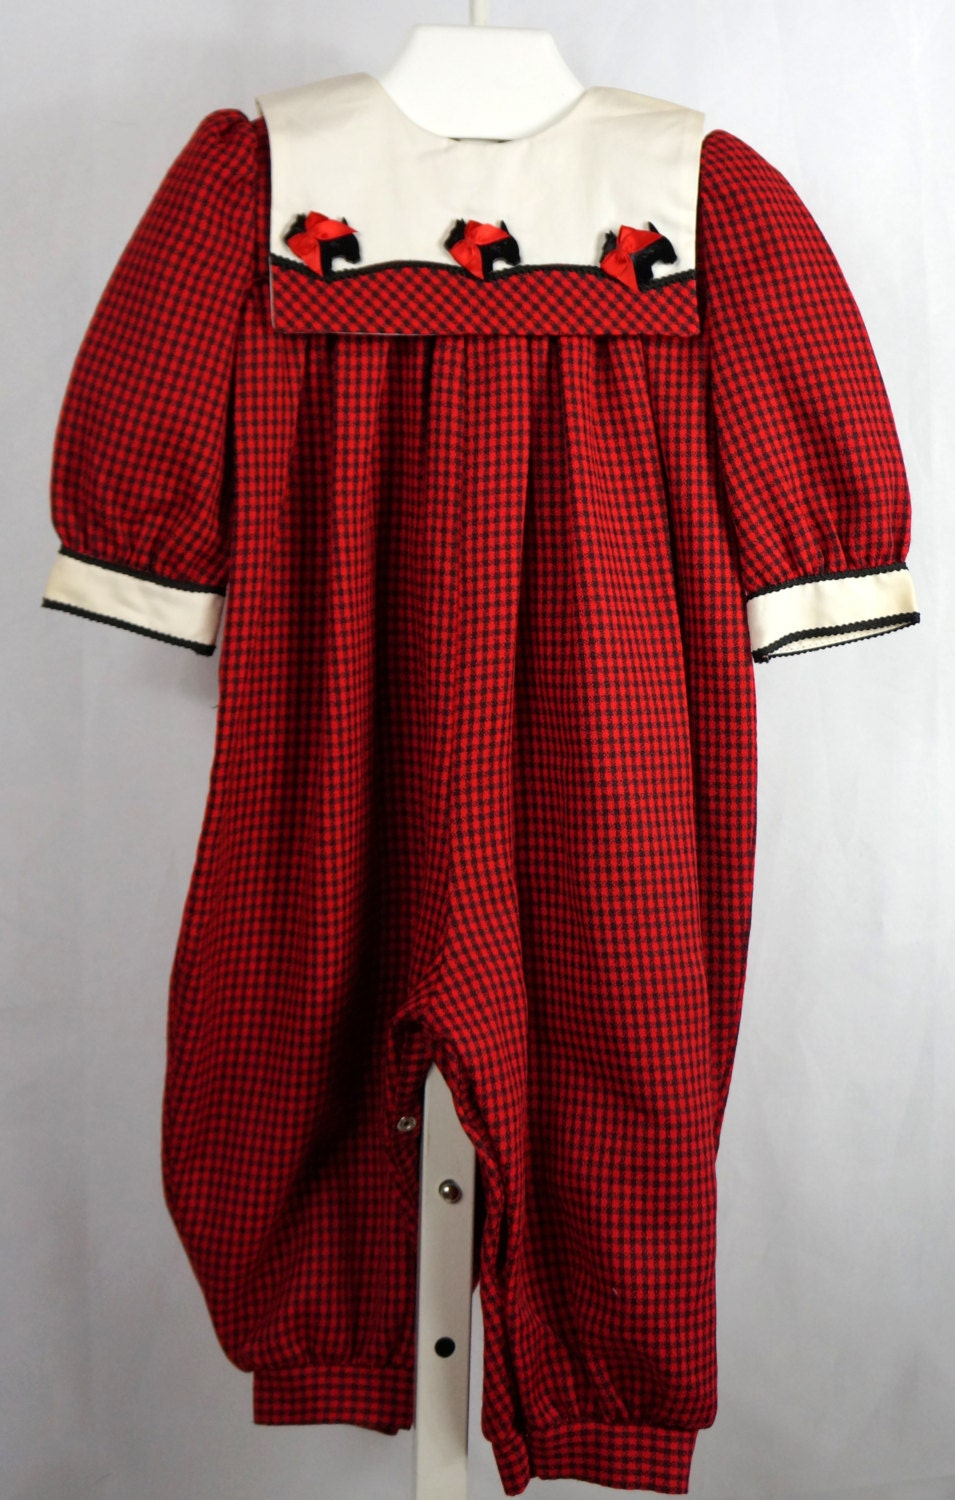 Vintage Red and Black Plaid Pants Romper with Scotty Dogs